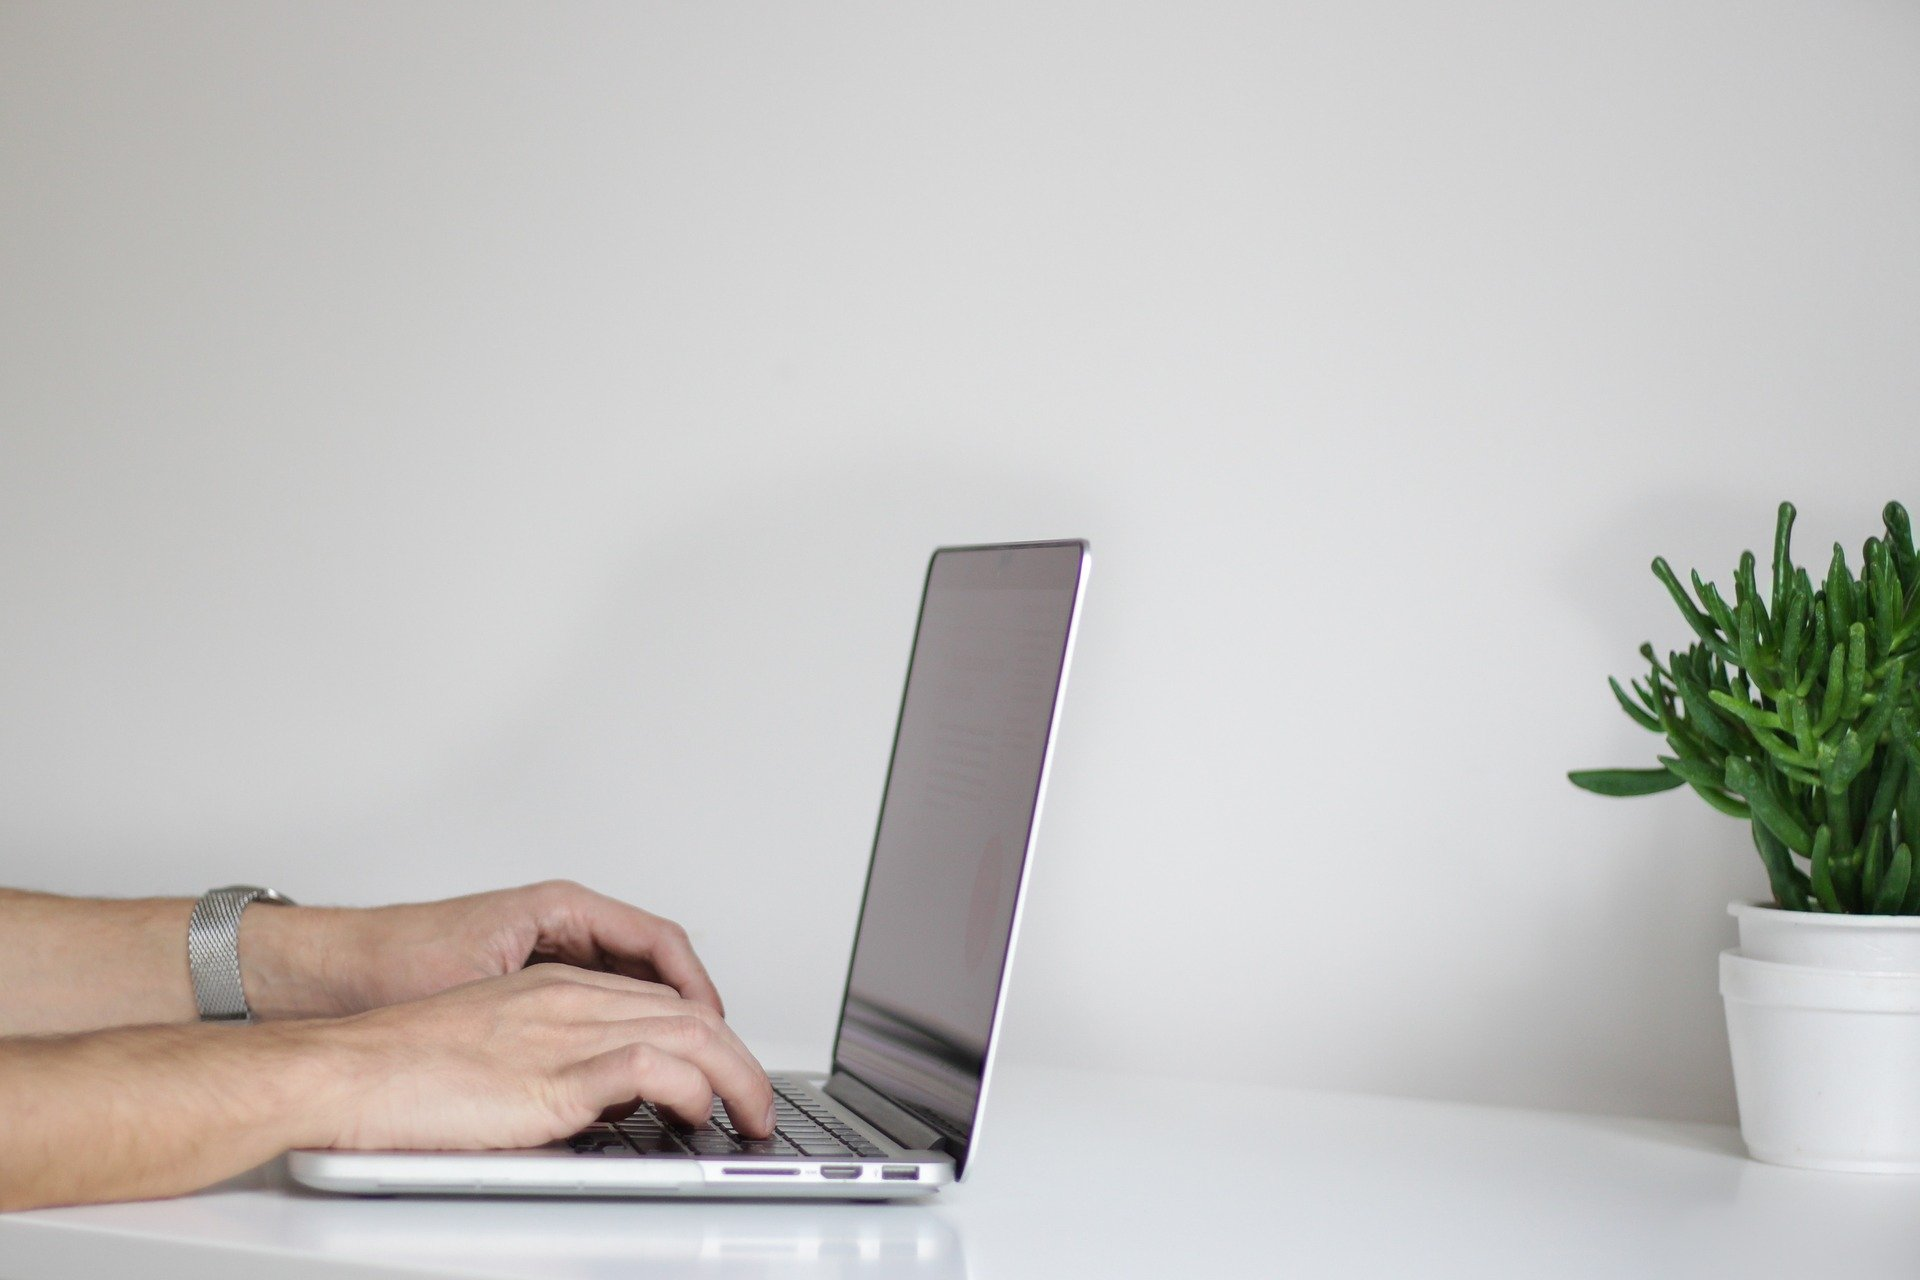 hands-computer-plant-wall-table-white